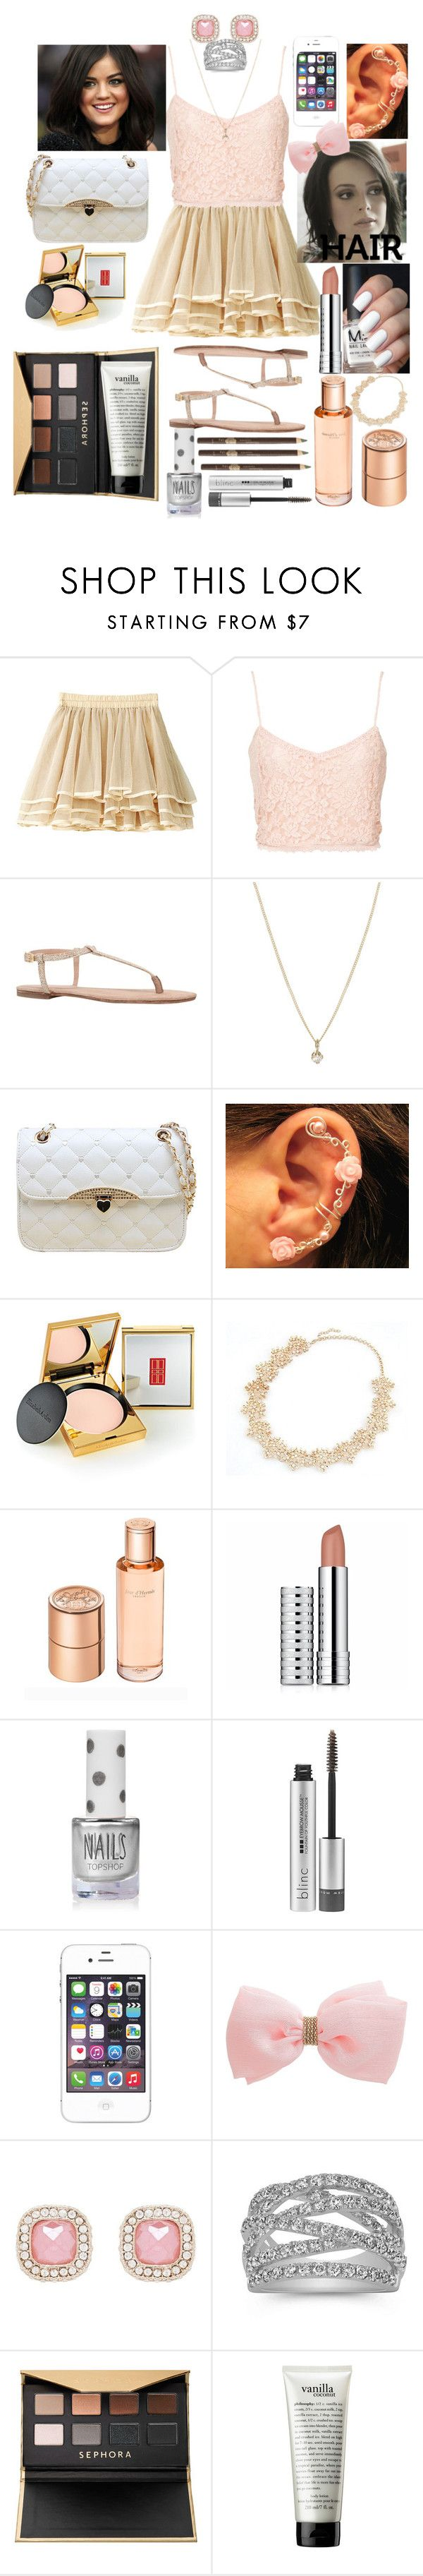 """Lucy Hale #20"" by haroldamore ❤ liked on Polyvore featuring NLY Trend, Kurt Geiger, Laura Lee Jewellery, Chicnova Fashion, Elizabeth Arden, Hermès, Clinique, Topshop, Blinc and Miss Selfridge"